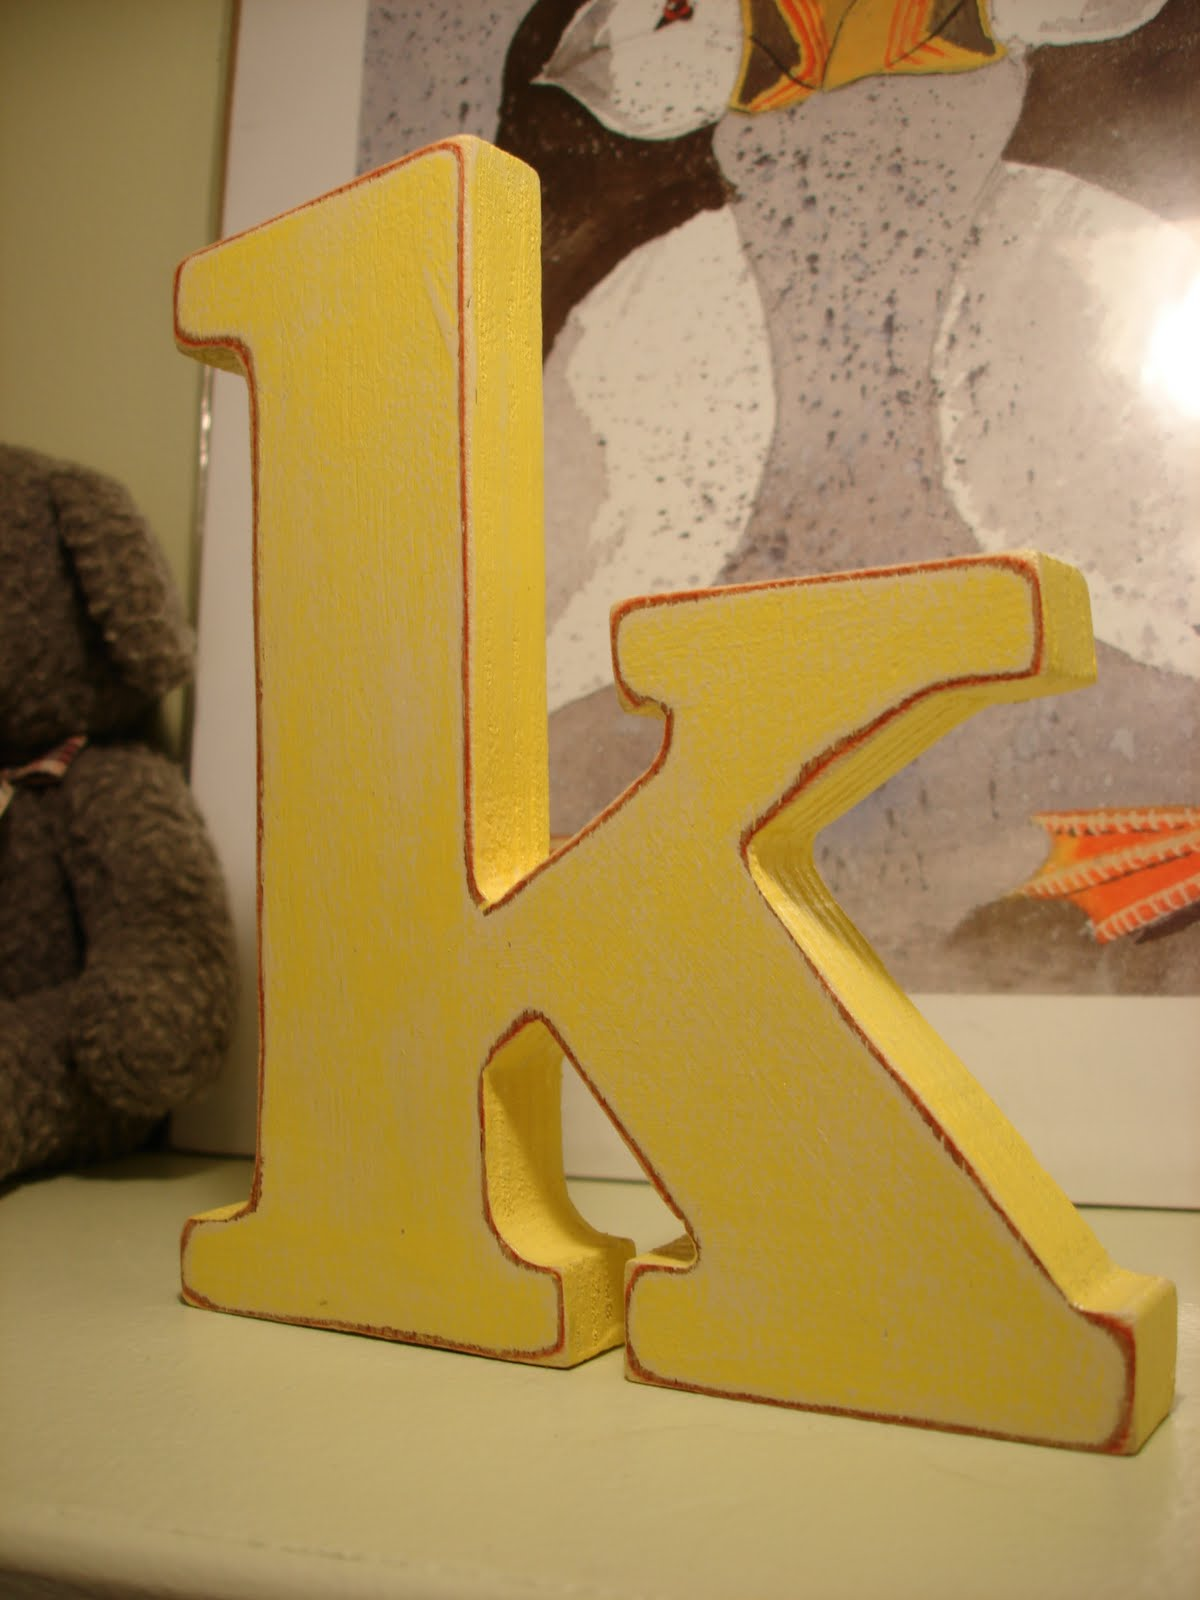 Patent Pending Projects Shop: Childrens Wooden Letters